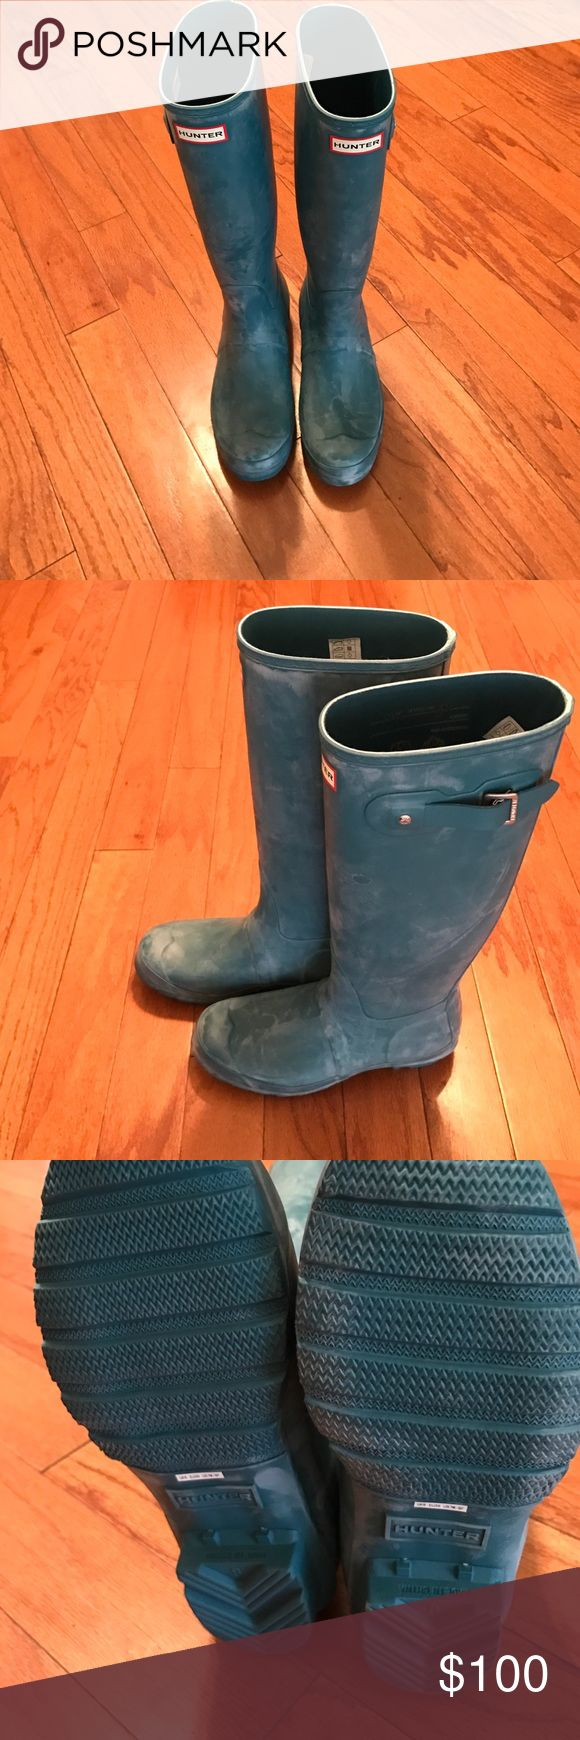 NWOT Teal Hunter Boots New without tags! Never worn! US Female size 8 UK 6 EU 39. Feel free to ask question and bundle to receive a discount! (: Hunter Boots Shoes Winter & Rain Boots